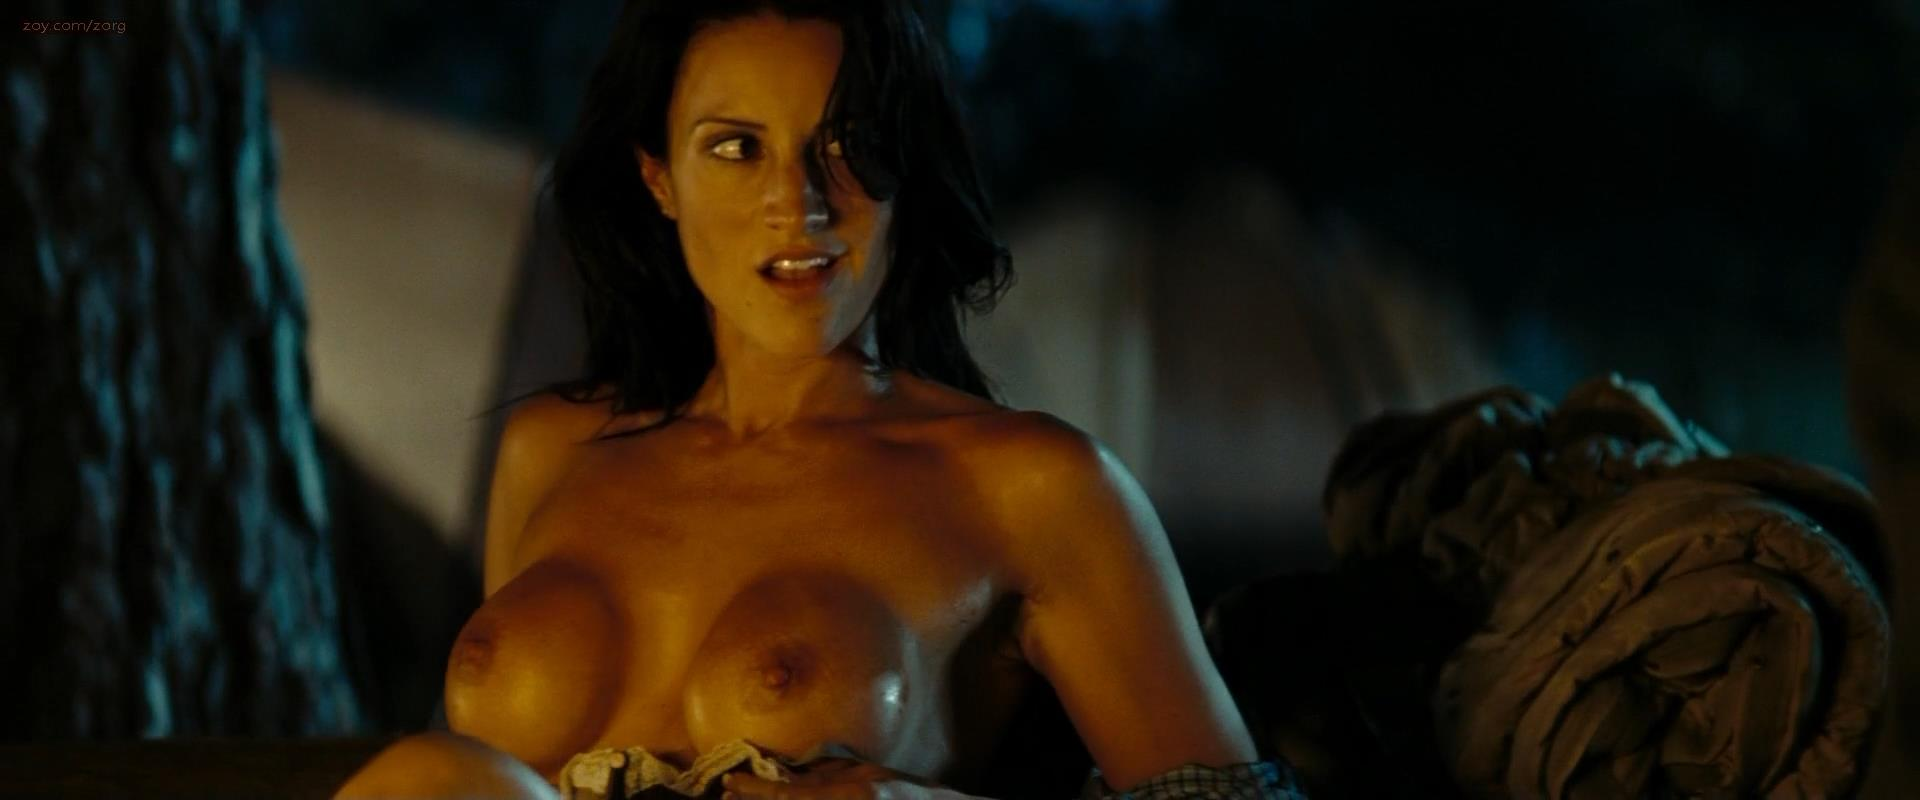 America Olivo nude Julianna Guill nude sex and Willa Ford nude – Friday the 13th (2009) hd1080p